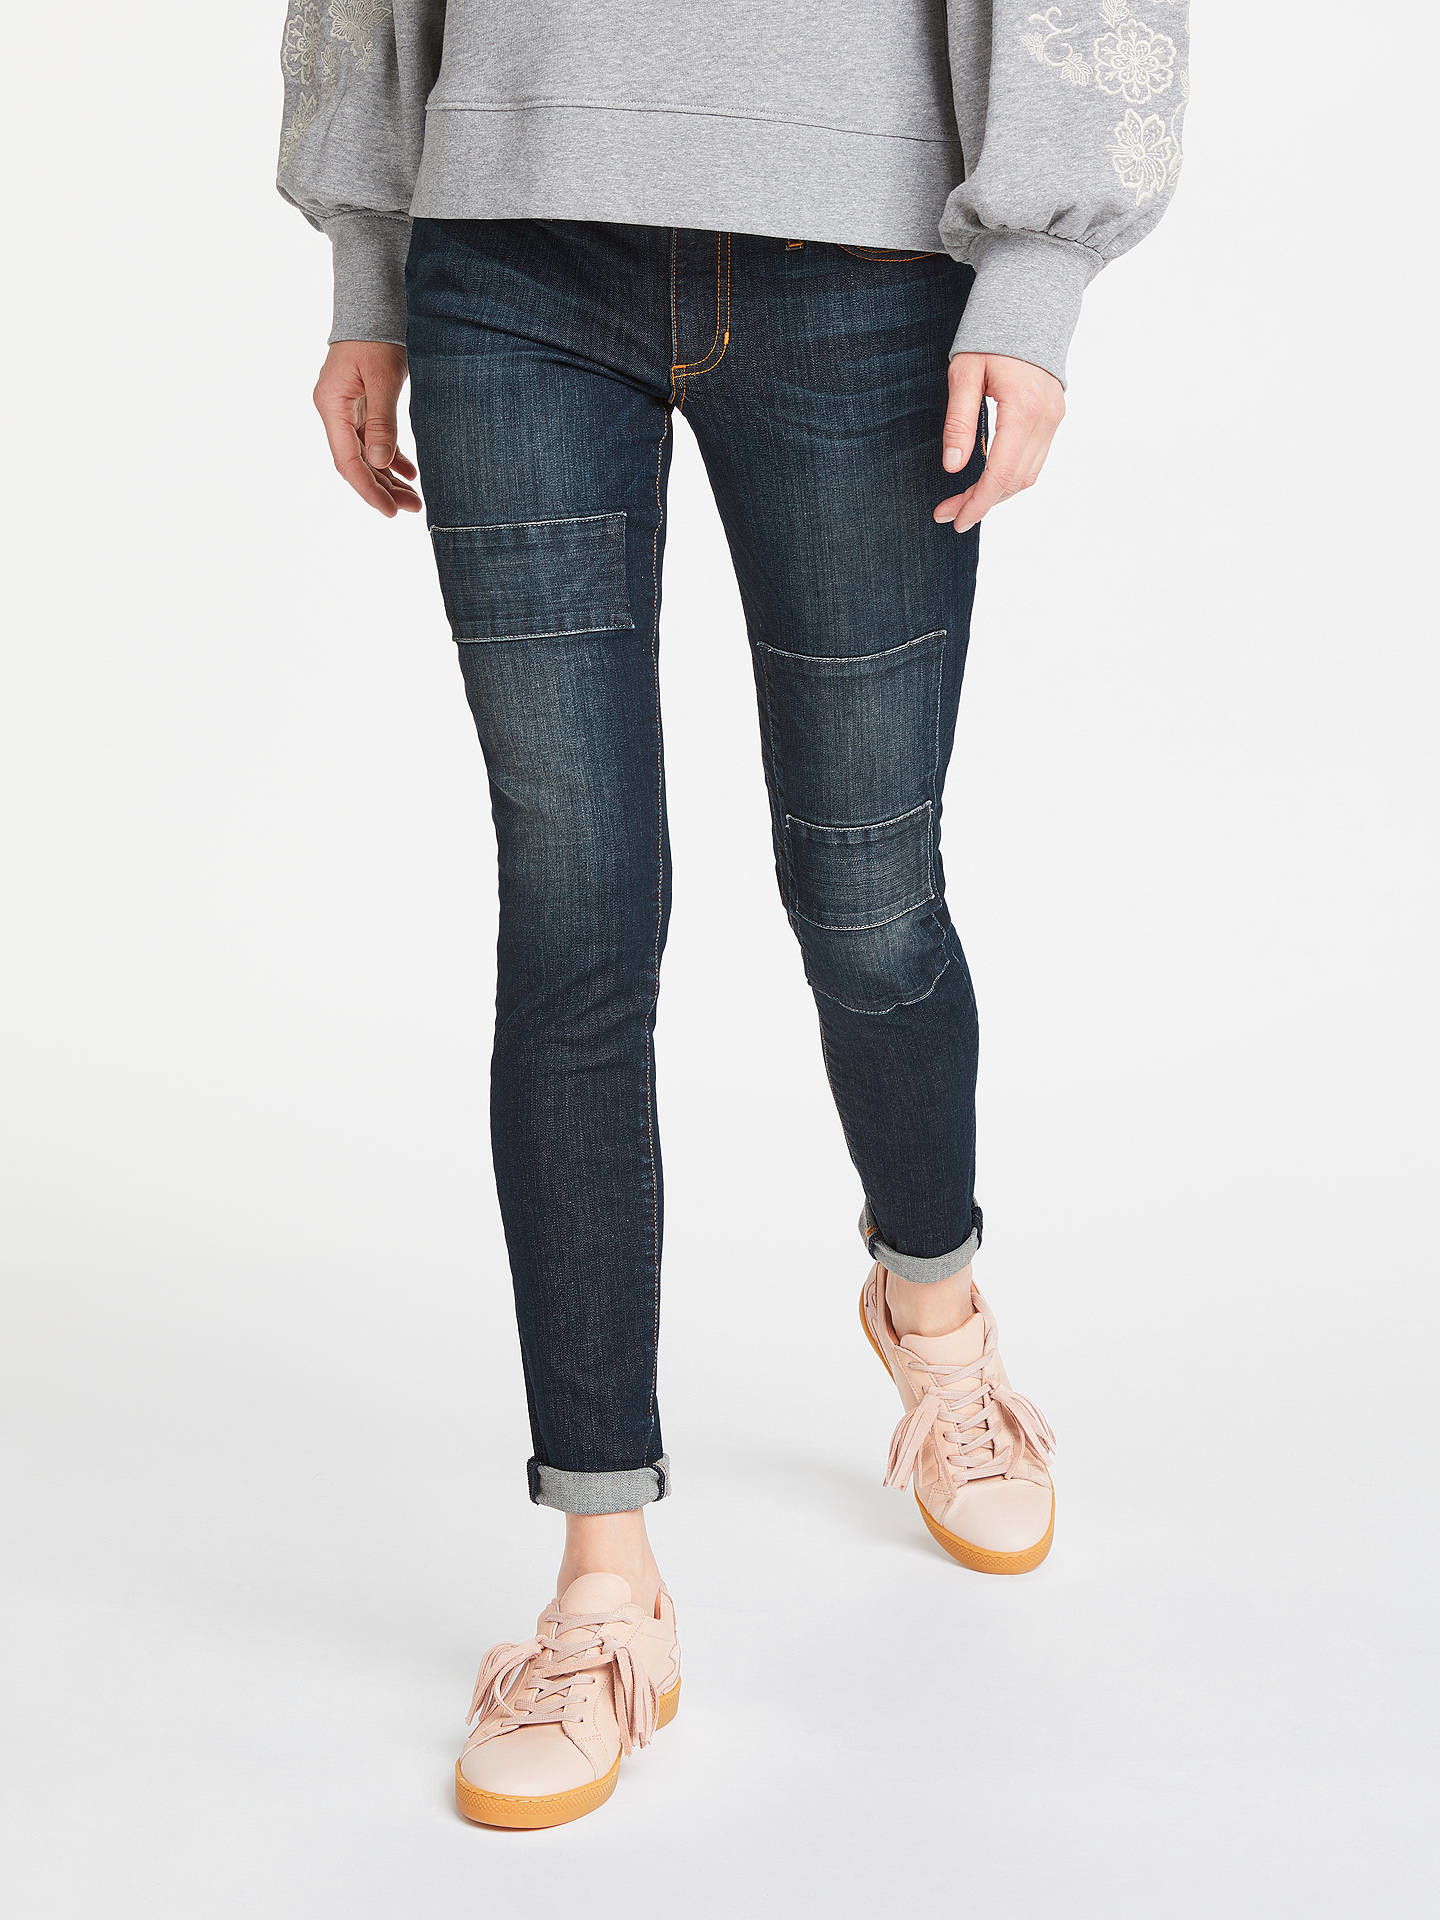 cheaper 9acb7 b54c7 AND/OR Abbot Kinney Patch Skinny Jeans, Rock On at John ...